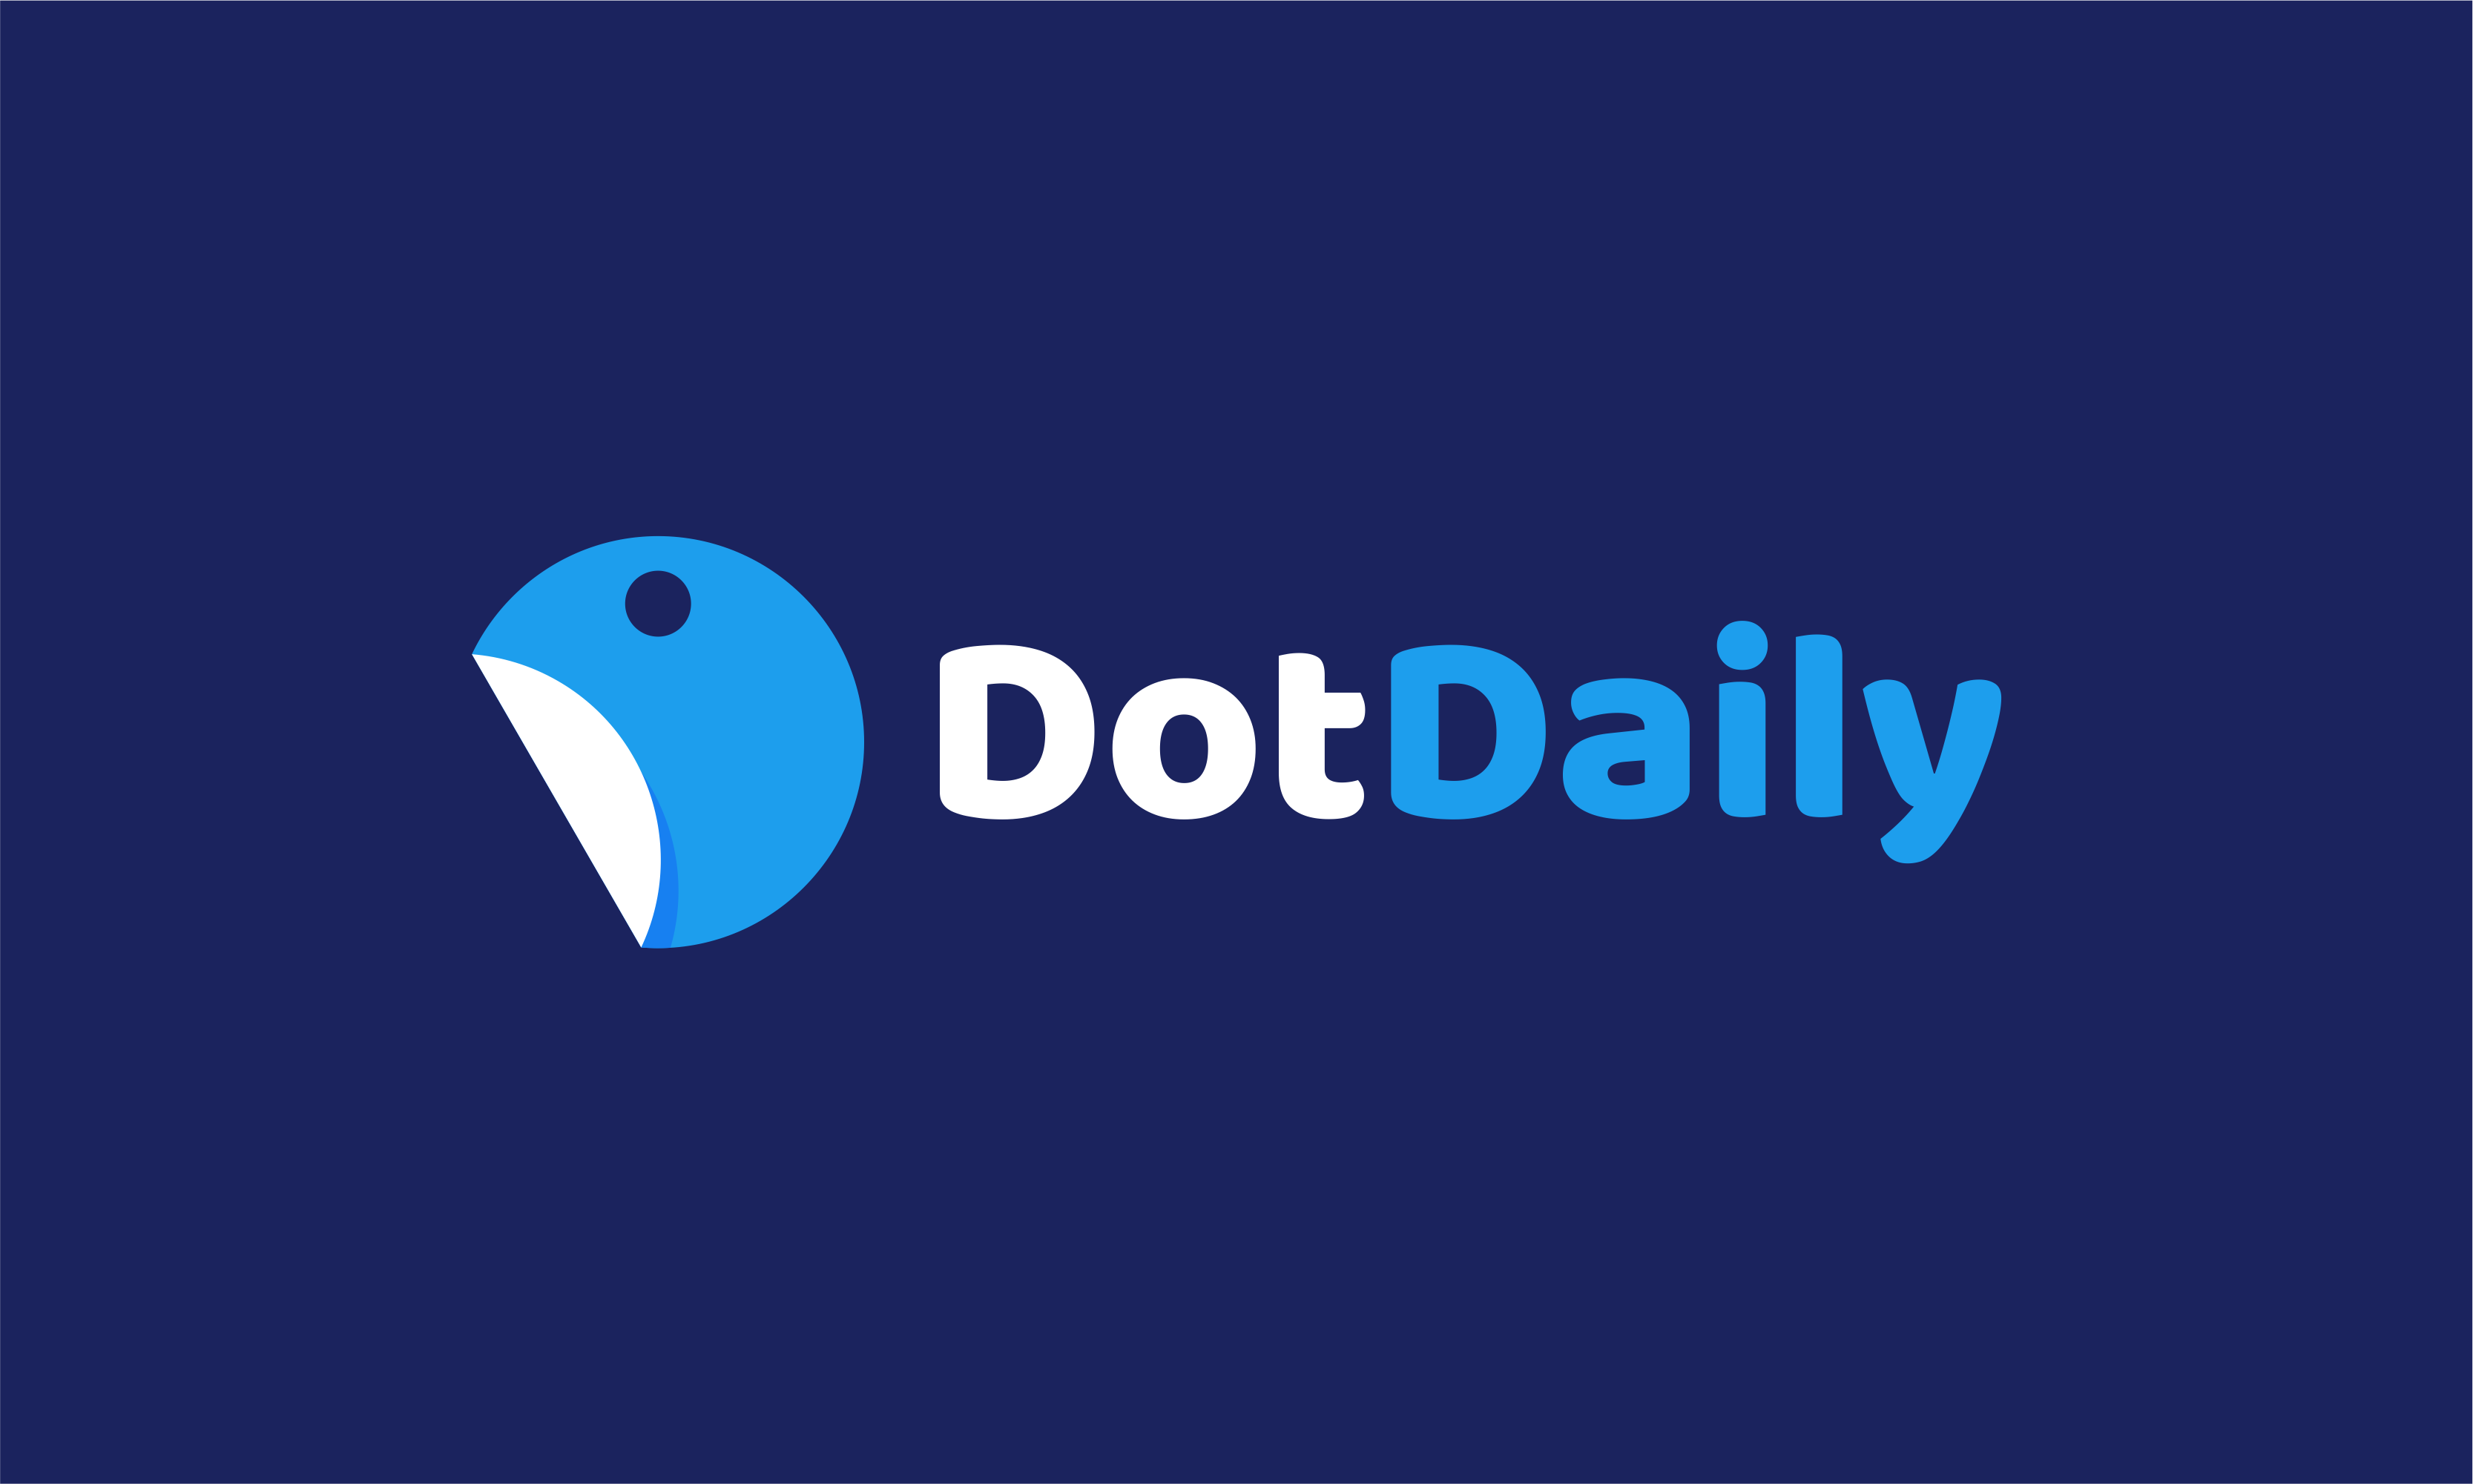 Dotdaily